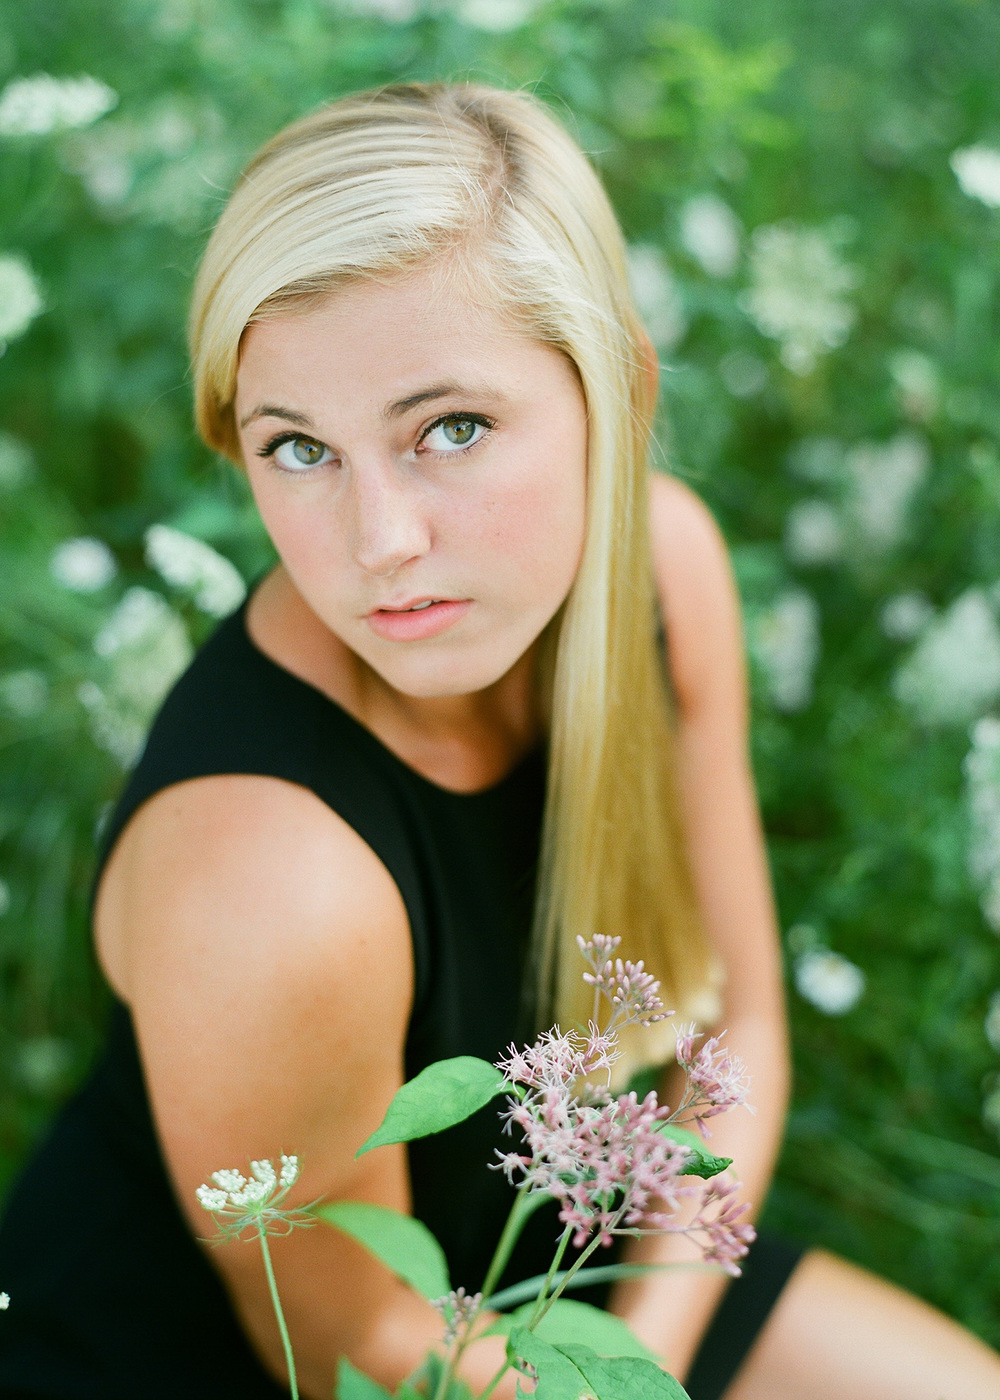 wausau-senior-photographer-paige-kocourek